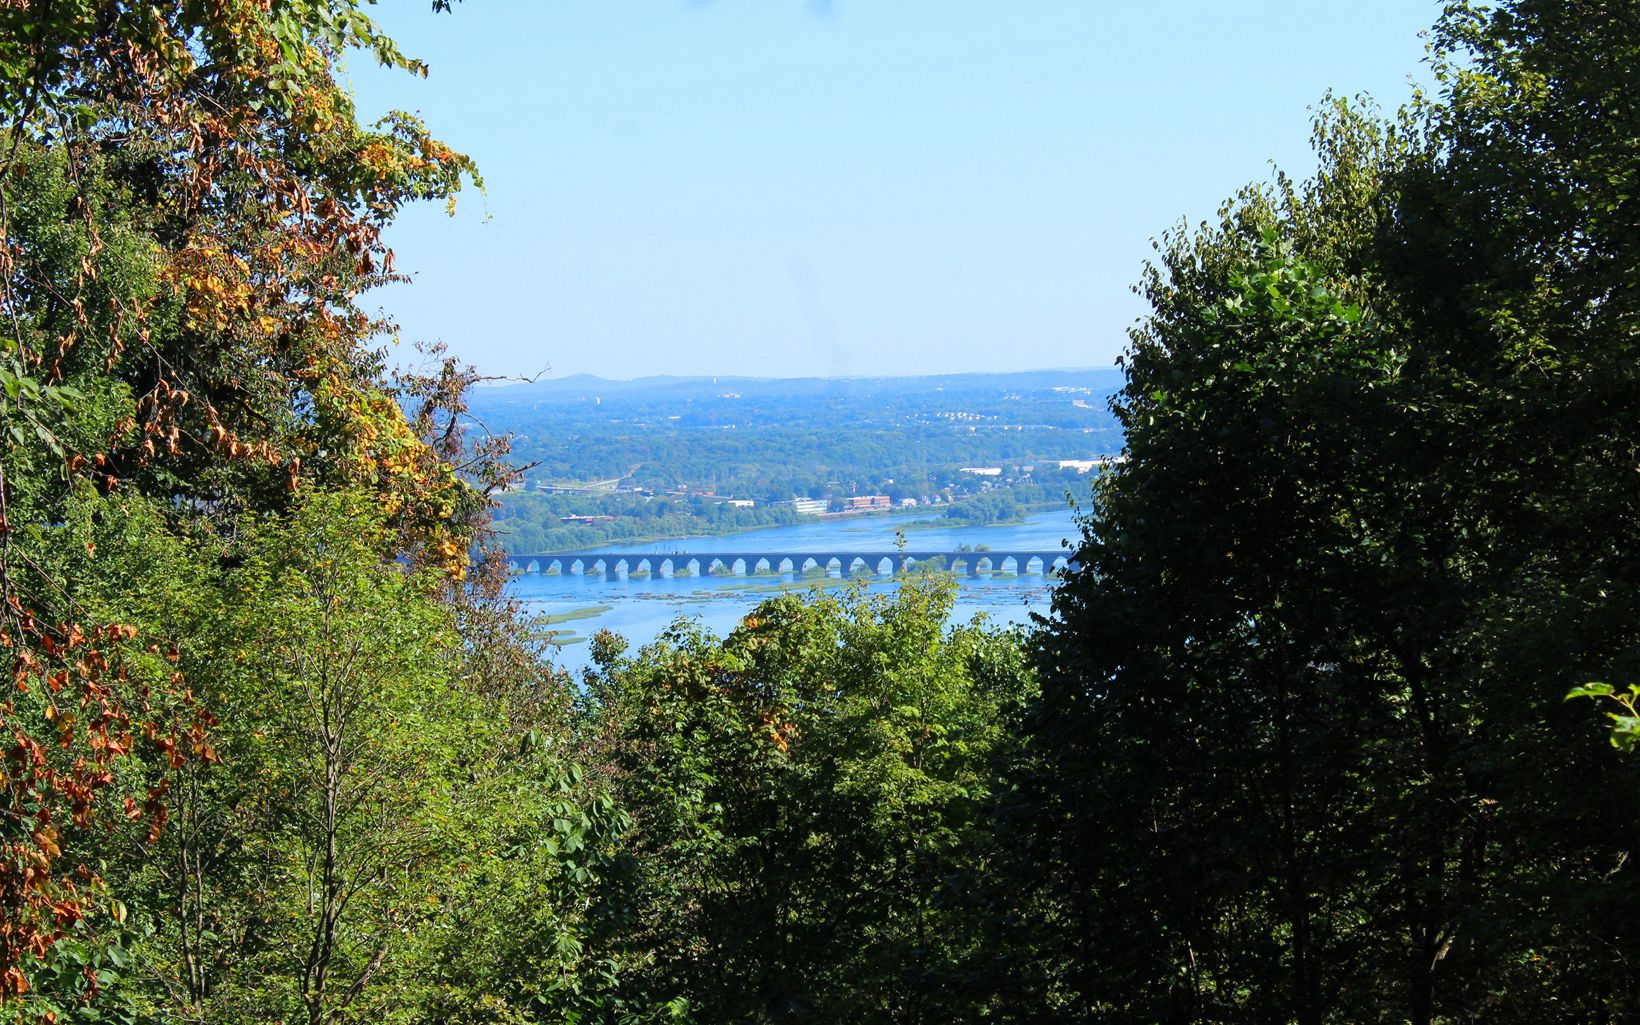 Trees frame a view of a bridge stretching across the Susquehanna.